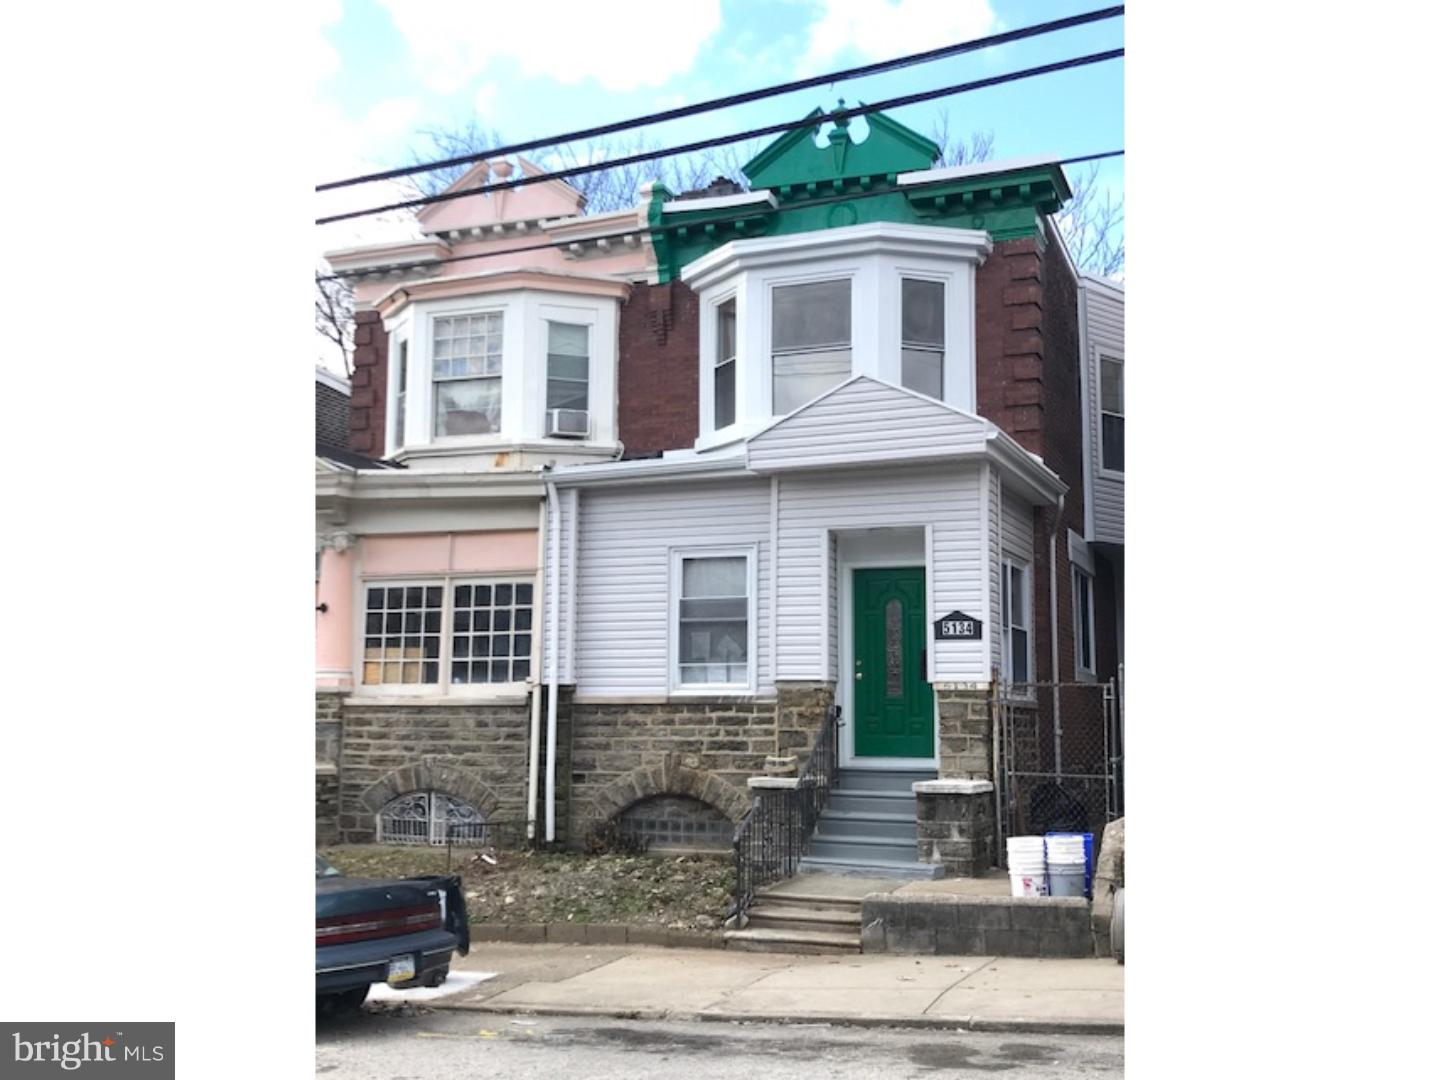 5134 N 15TH STREET, PHILADELPHIA, PA 19141